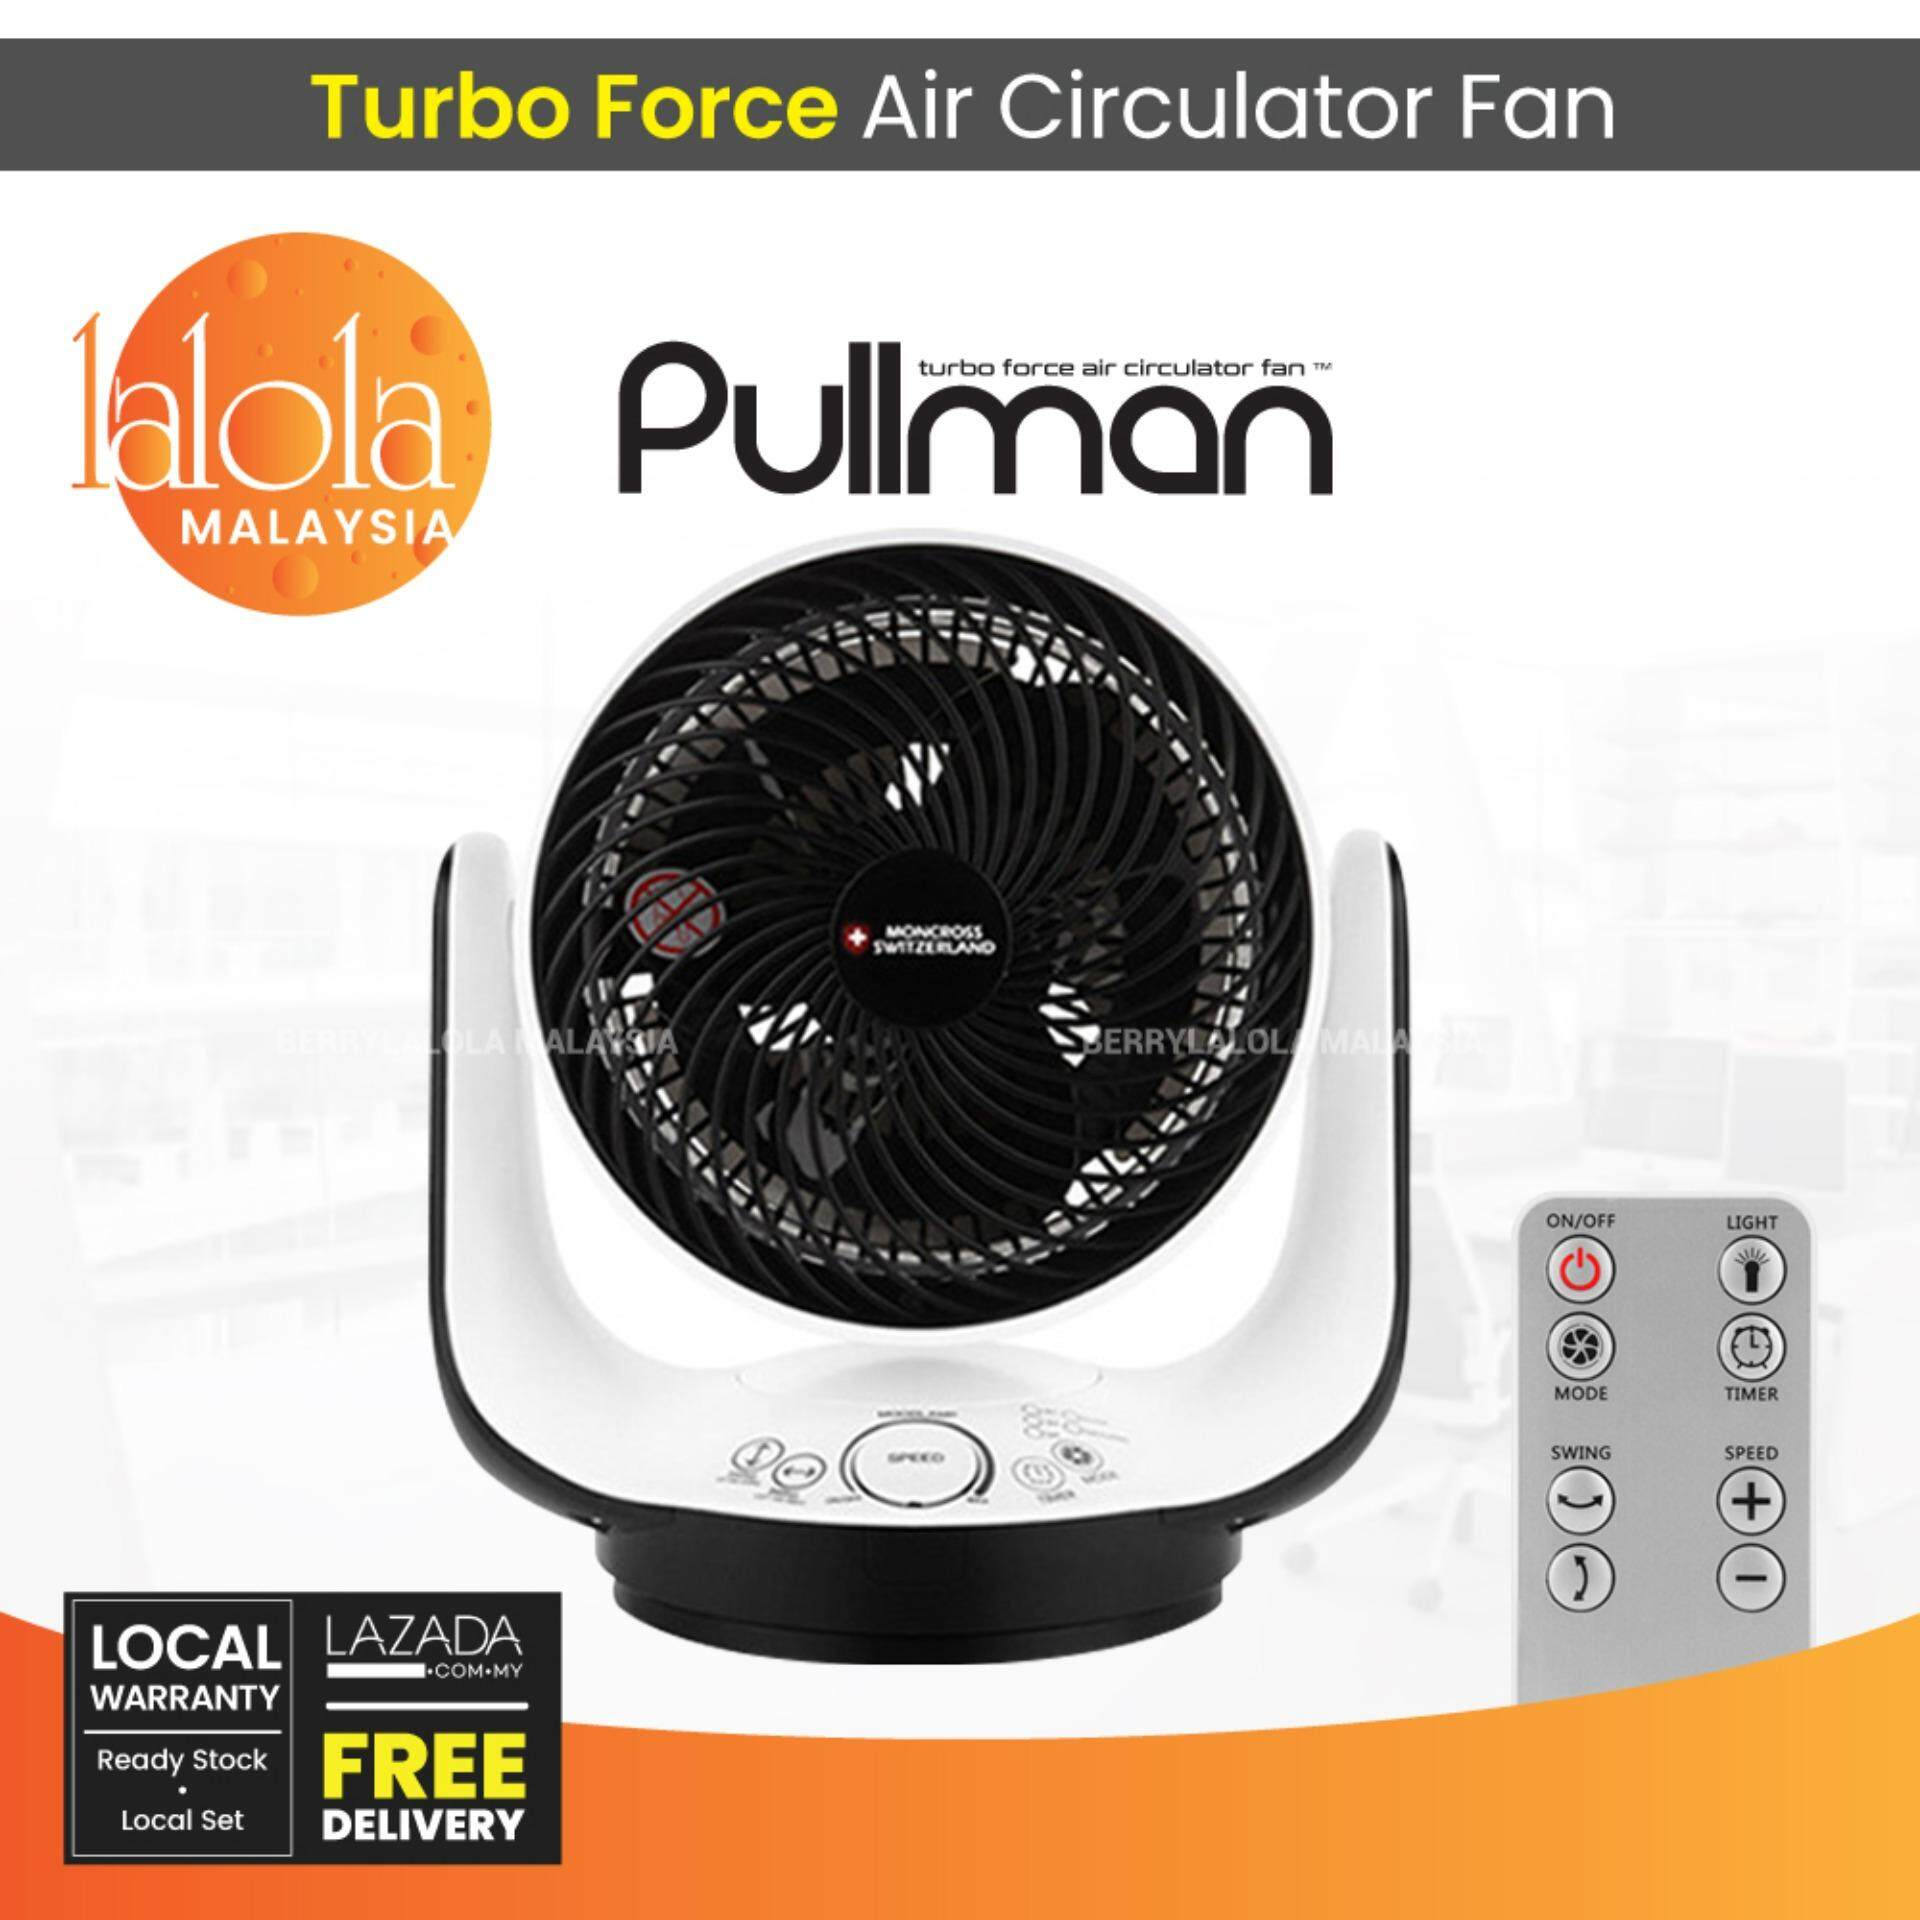 [local Seller] Pullman Turbo Force Air Circulator With 7 Led By Berrylalola Malaysia.